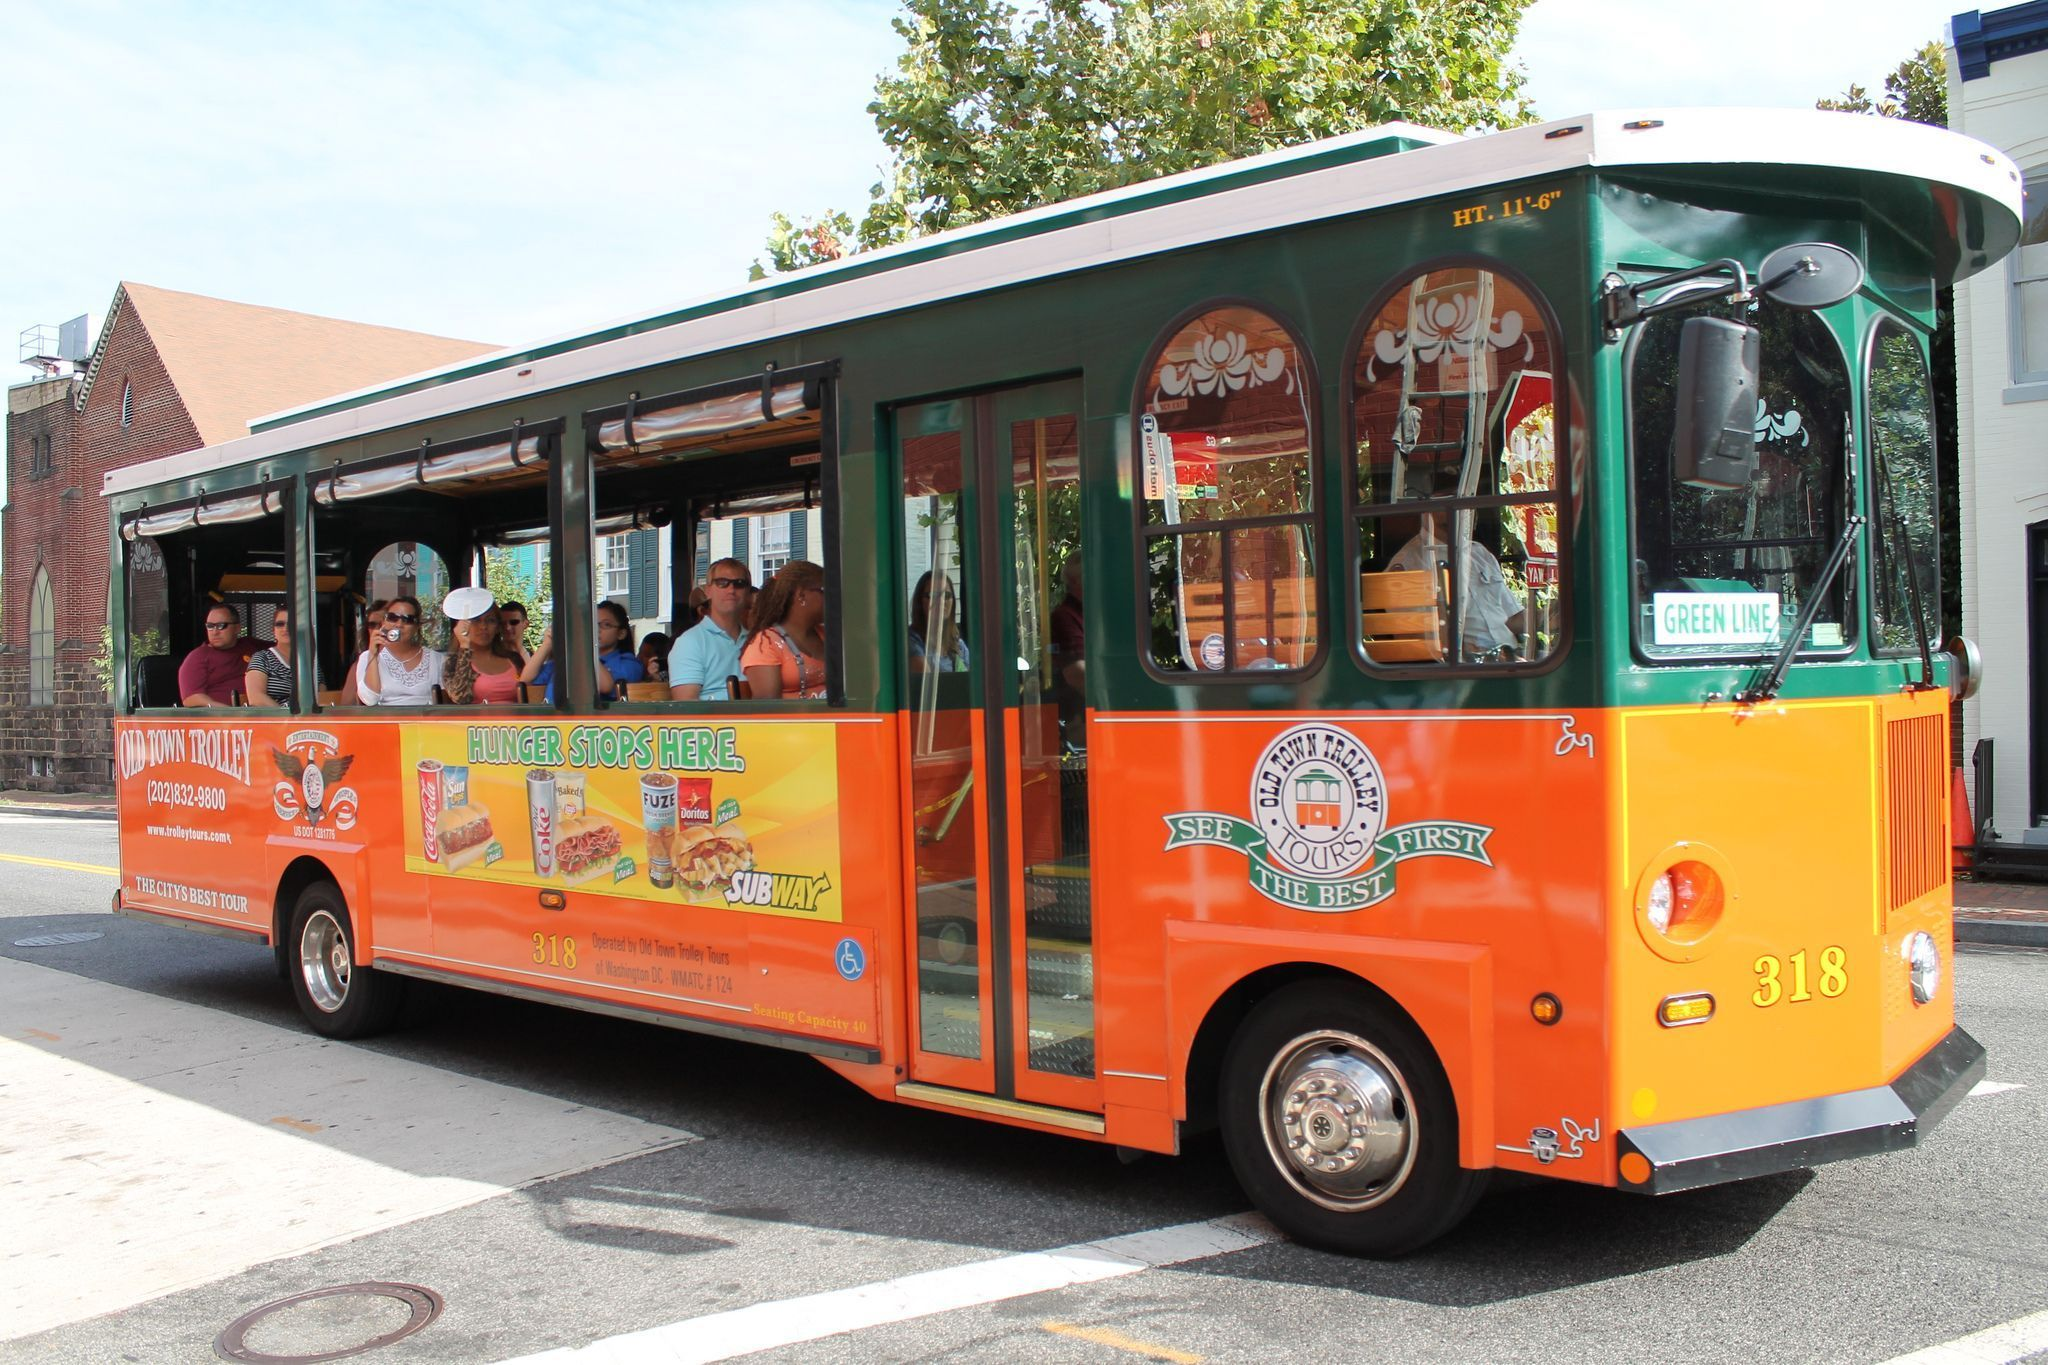 Old Town Trolley Tours, explore Washington, DC attractions at your own pace, See Old Town Trolley Tour Routes, prices, sightseeing tips and more.